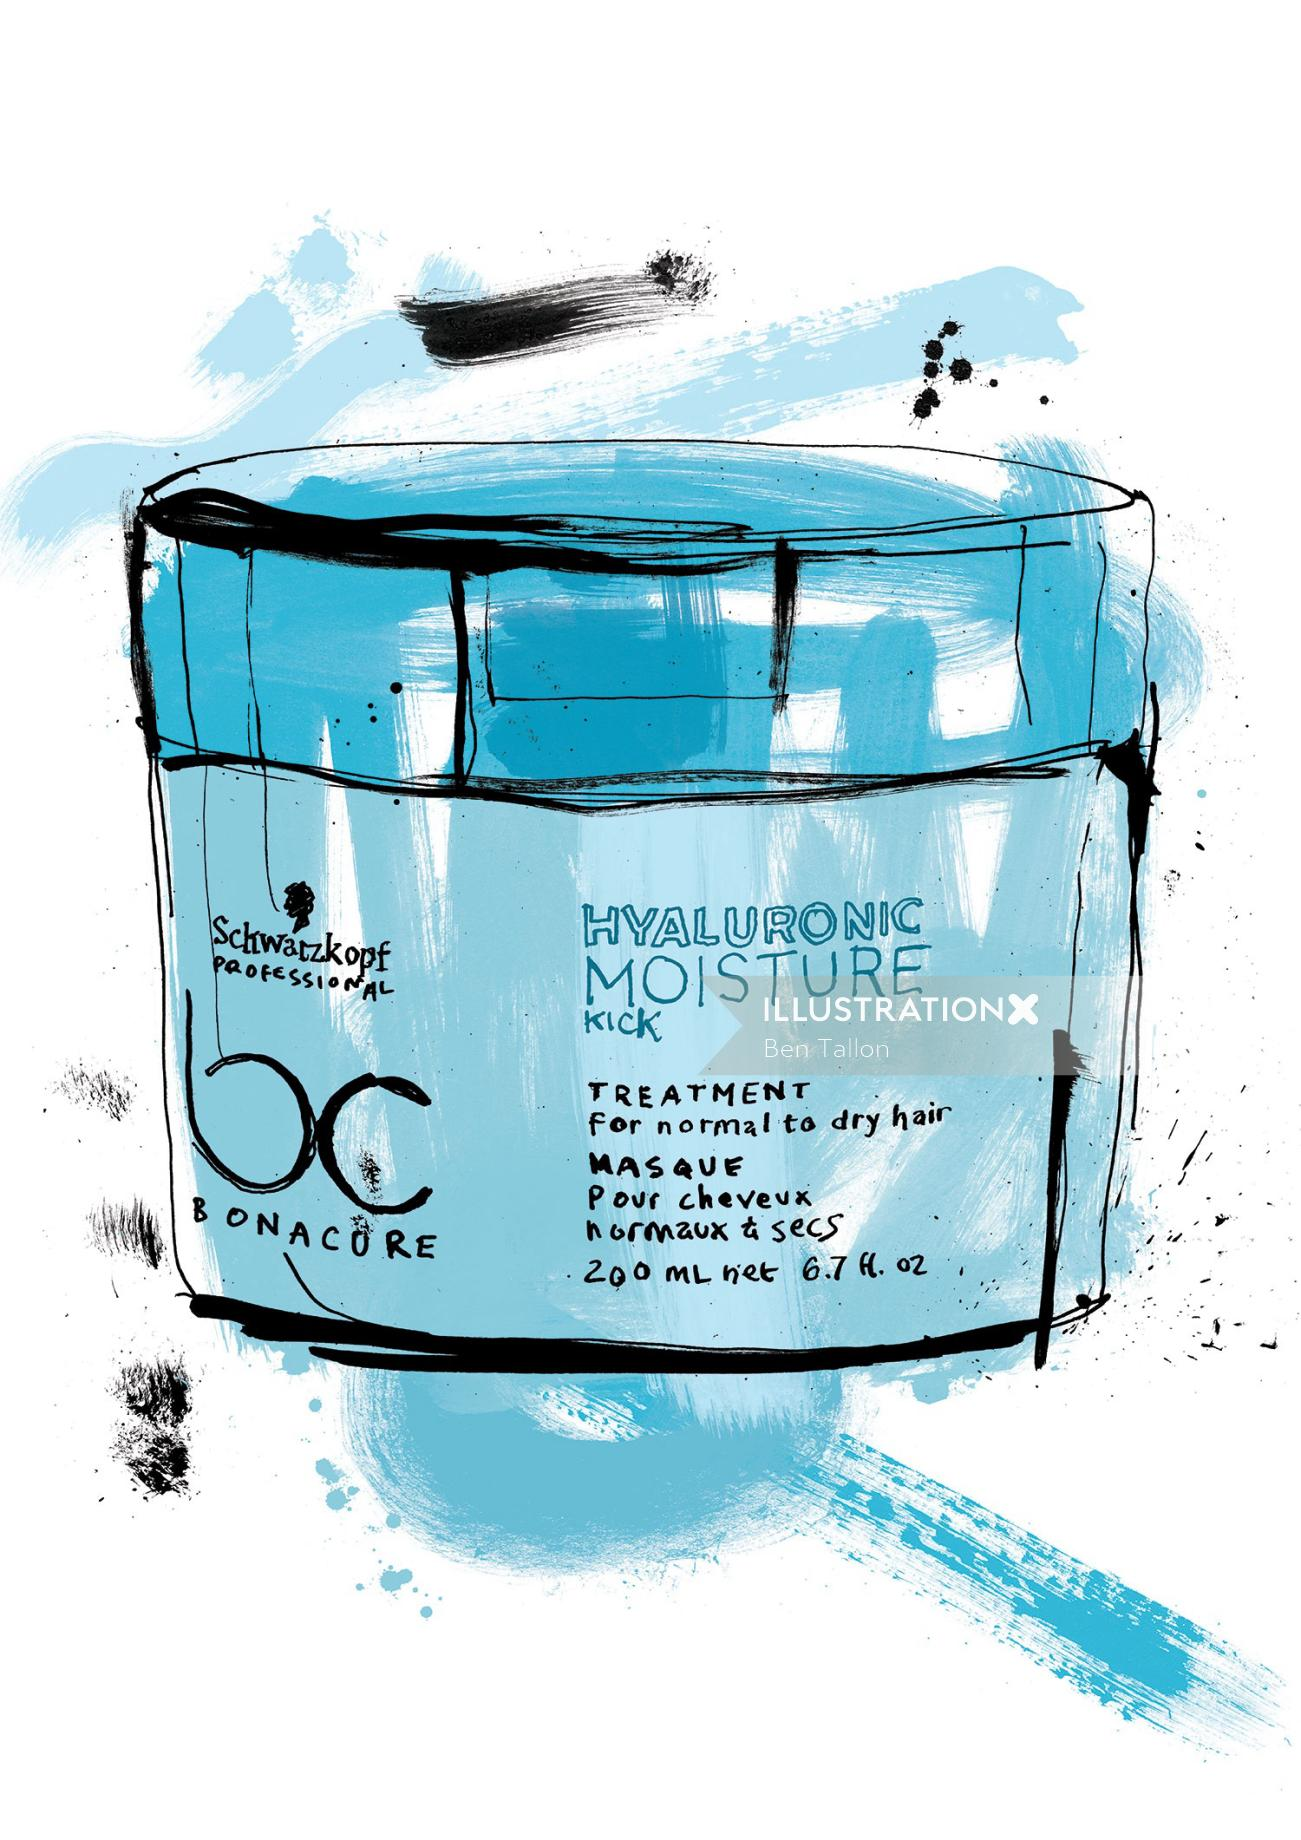 Schwarzkopf package illustration